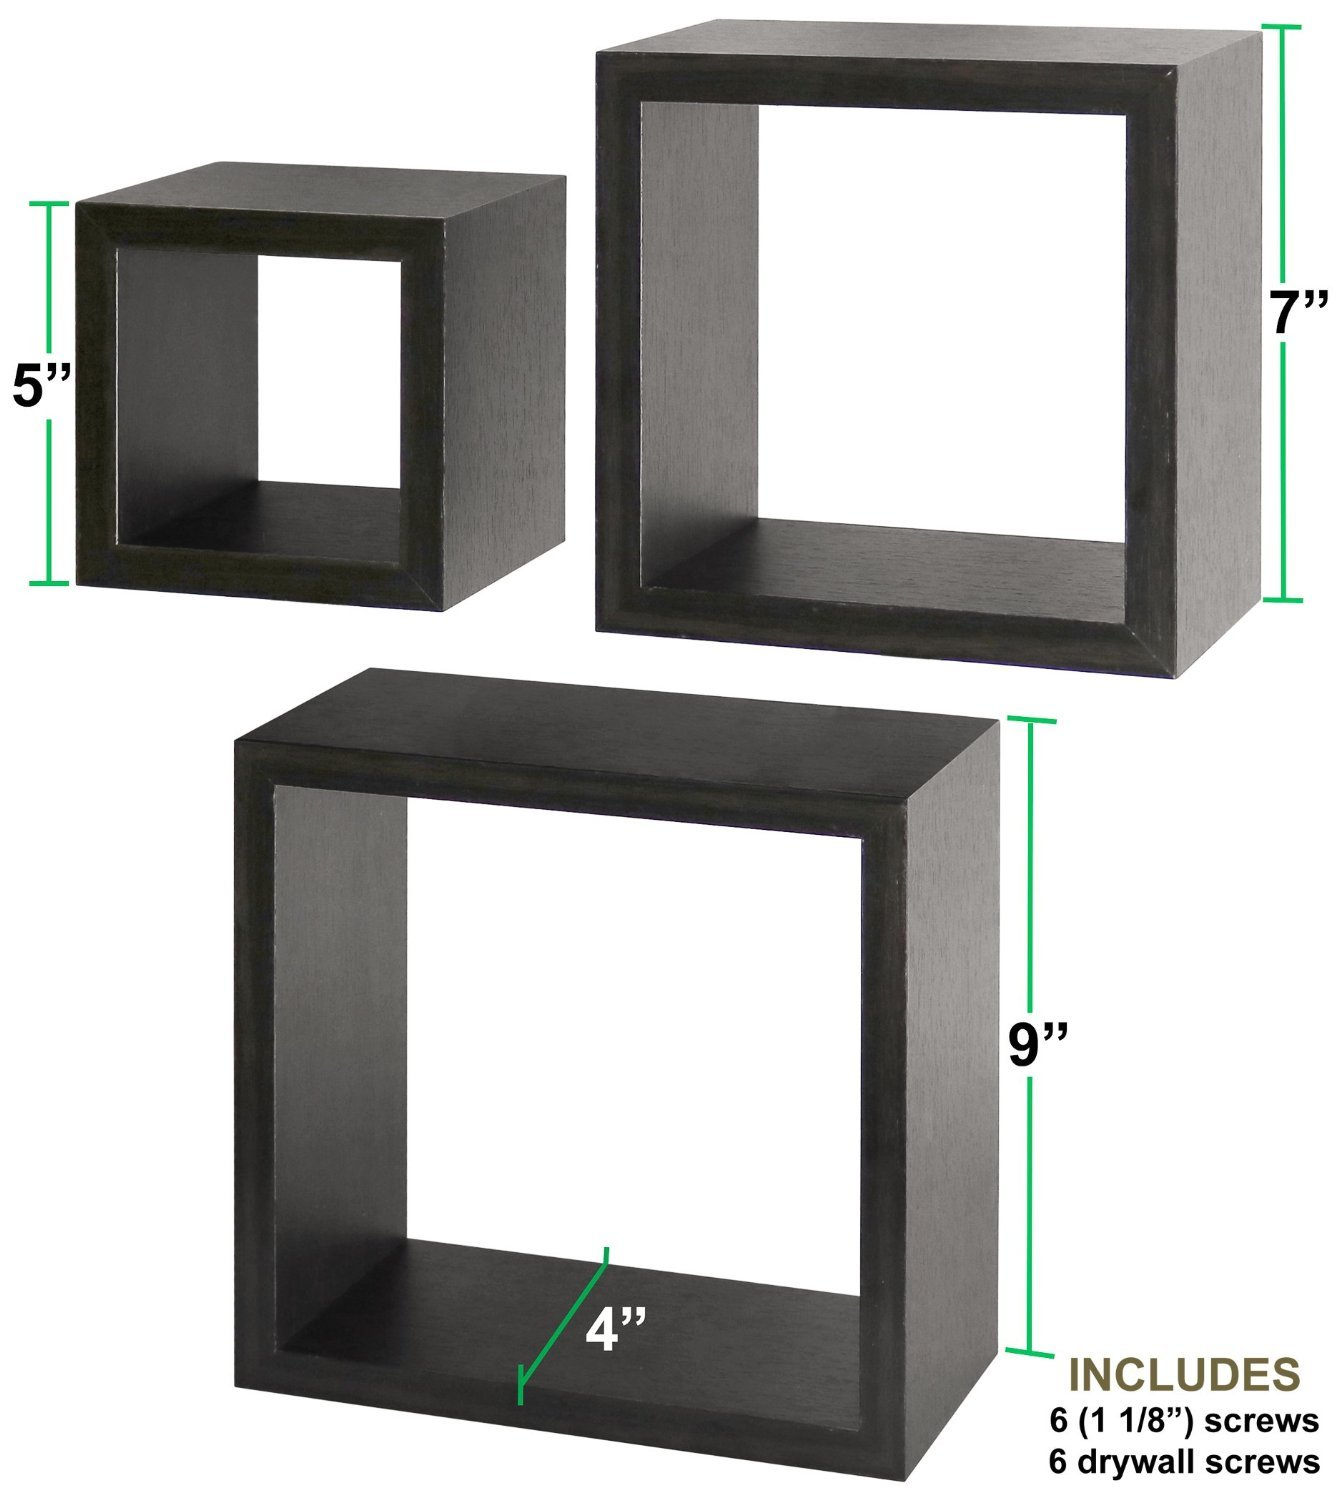 Greenco Set of 3 Floating Cube Shelves, Espresso Finish - Set of 3 size shelves Made of durable MDF laminate Beautiful espresso finish that suits almost any decor Easy to mount with all necessary hardware Included - wall-shelves, living-room-furniture, living-room - 71ERaDPNm5L -